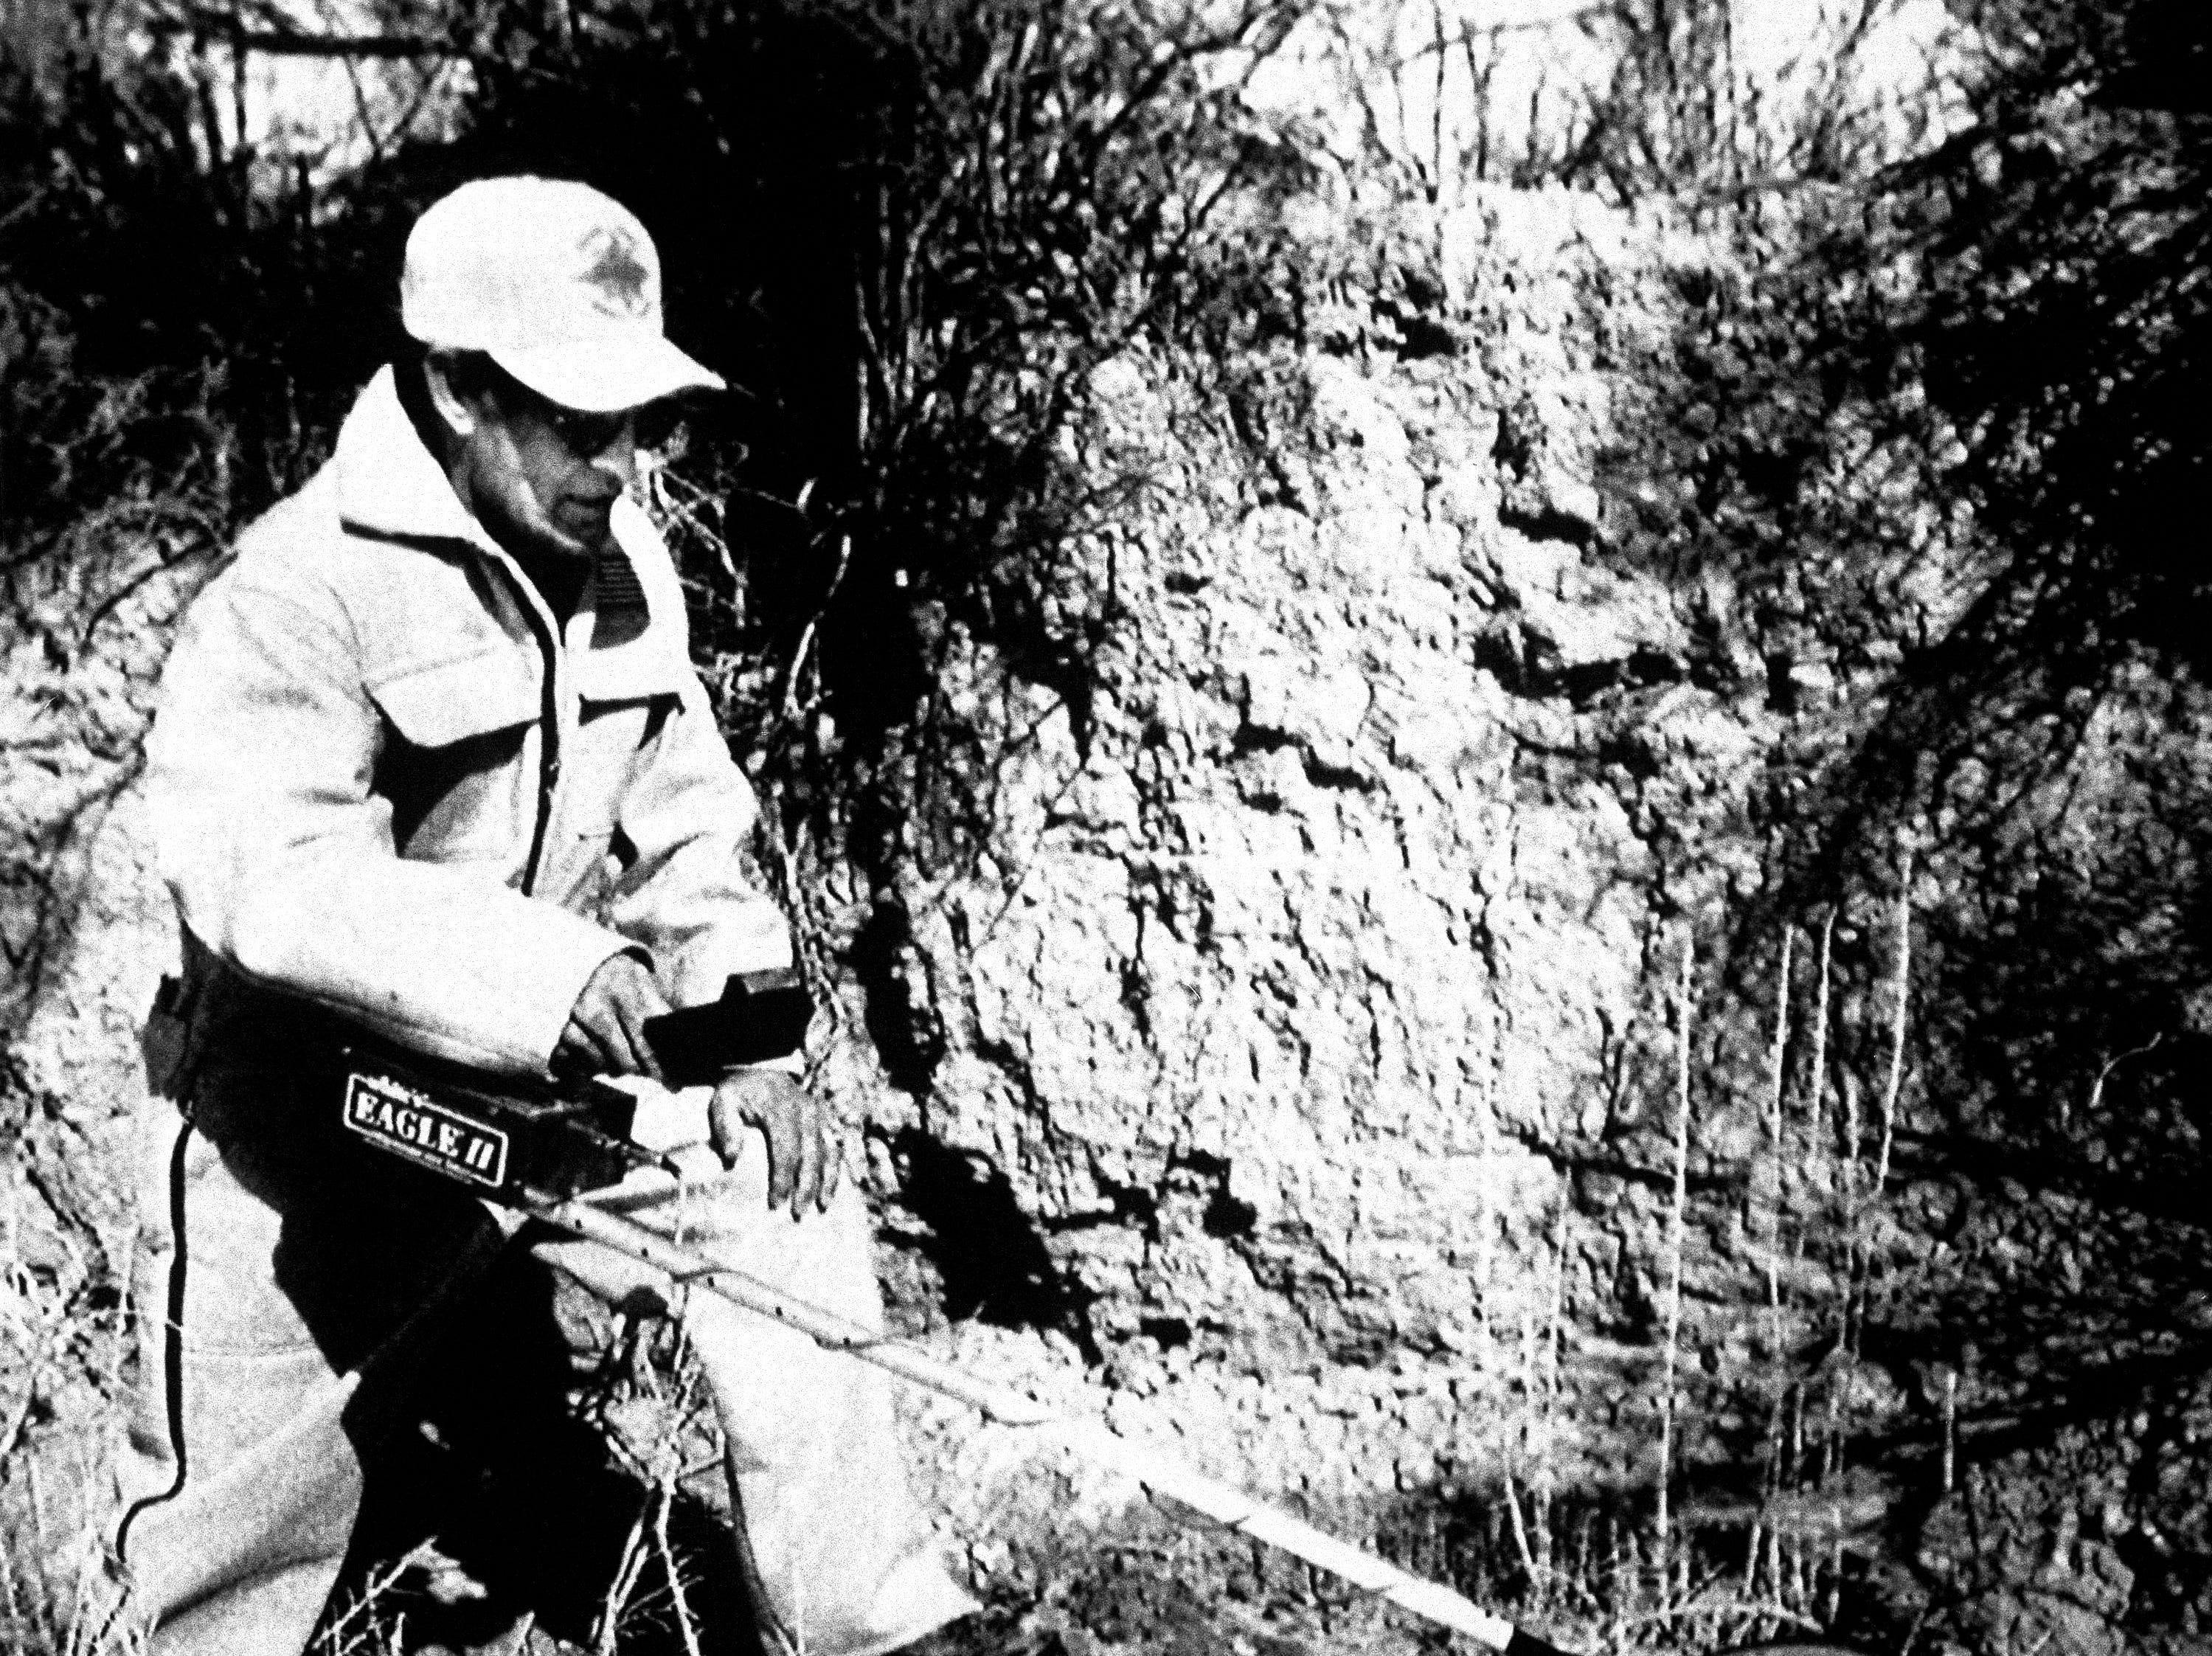 Joe Ruden, from the Carbon County Search and Rescue team uses a metal detector to search for the burial site of Sue Curtis, who disappeared the summer of 1975. Ted Bundy confessed to killing the girl less than an hour before he was executed today in Florida. The searchers were looking in an area that Bundy described, 10 miles south east of Price, Utah.